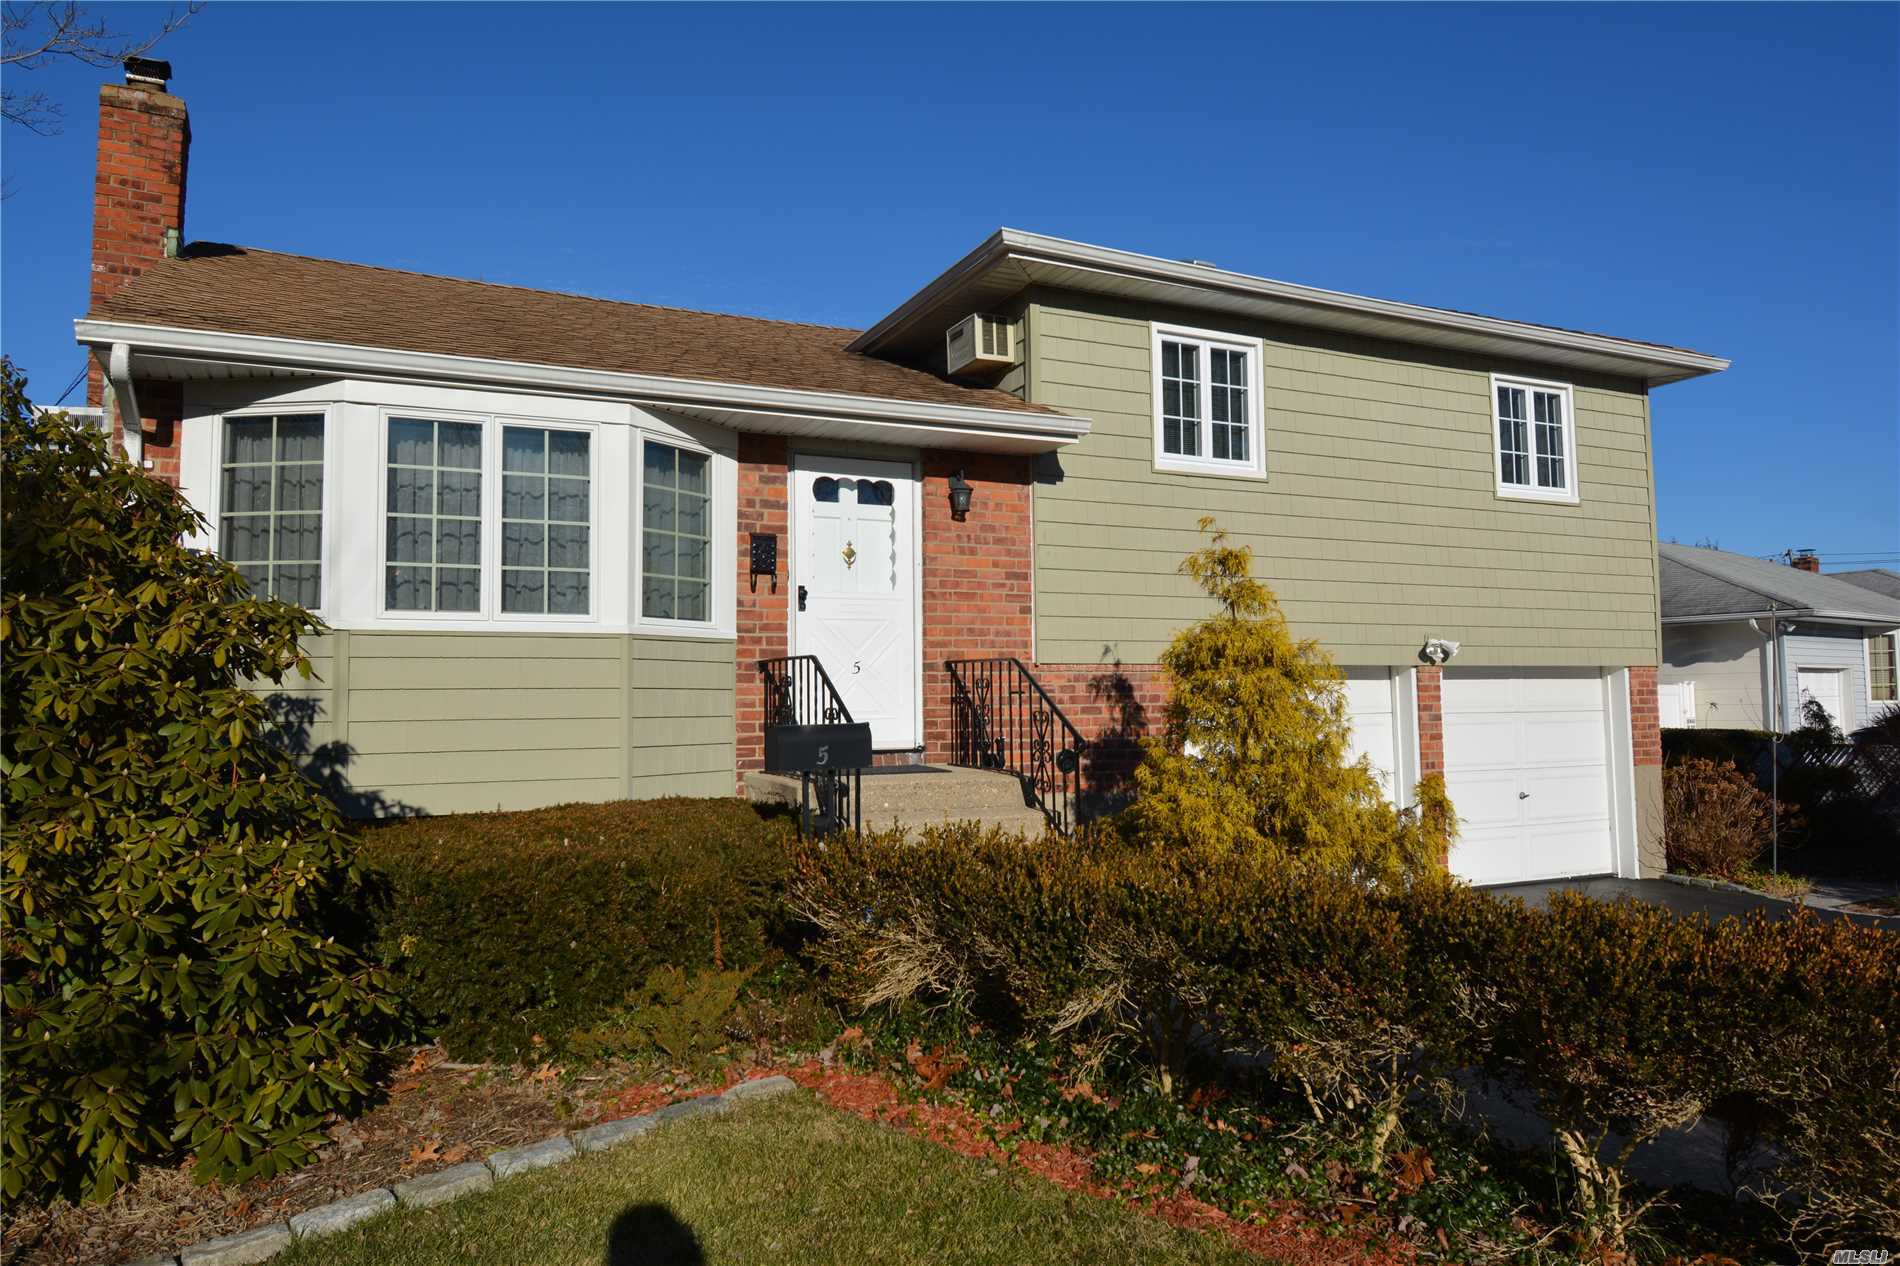 Lovely Maintained W/Updated Arch Roof. Thermopane Windows, Vinyl Siding, Burham Hot Water Heat W/Riello Head, 275 Gallon Oil Tank In Bsmnt. 200 Amp Electric. Oak Floors, Paver Patio. Landscaped Property W/Lots Of Privacy. 2 Car Attached Garage. New Washer/Dryer. Pride Of Ownership.